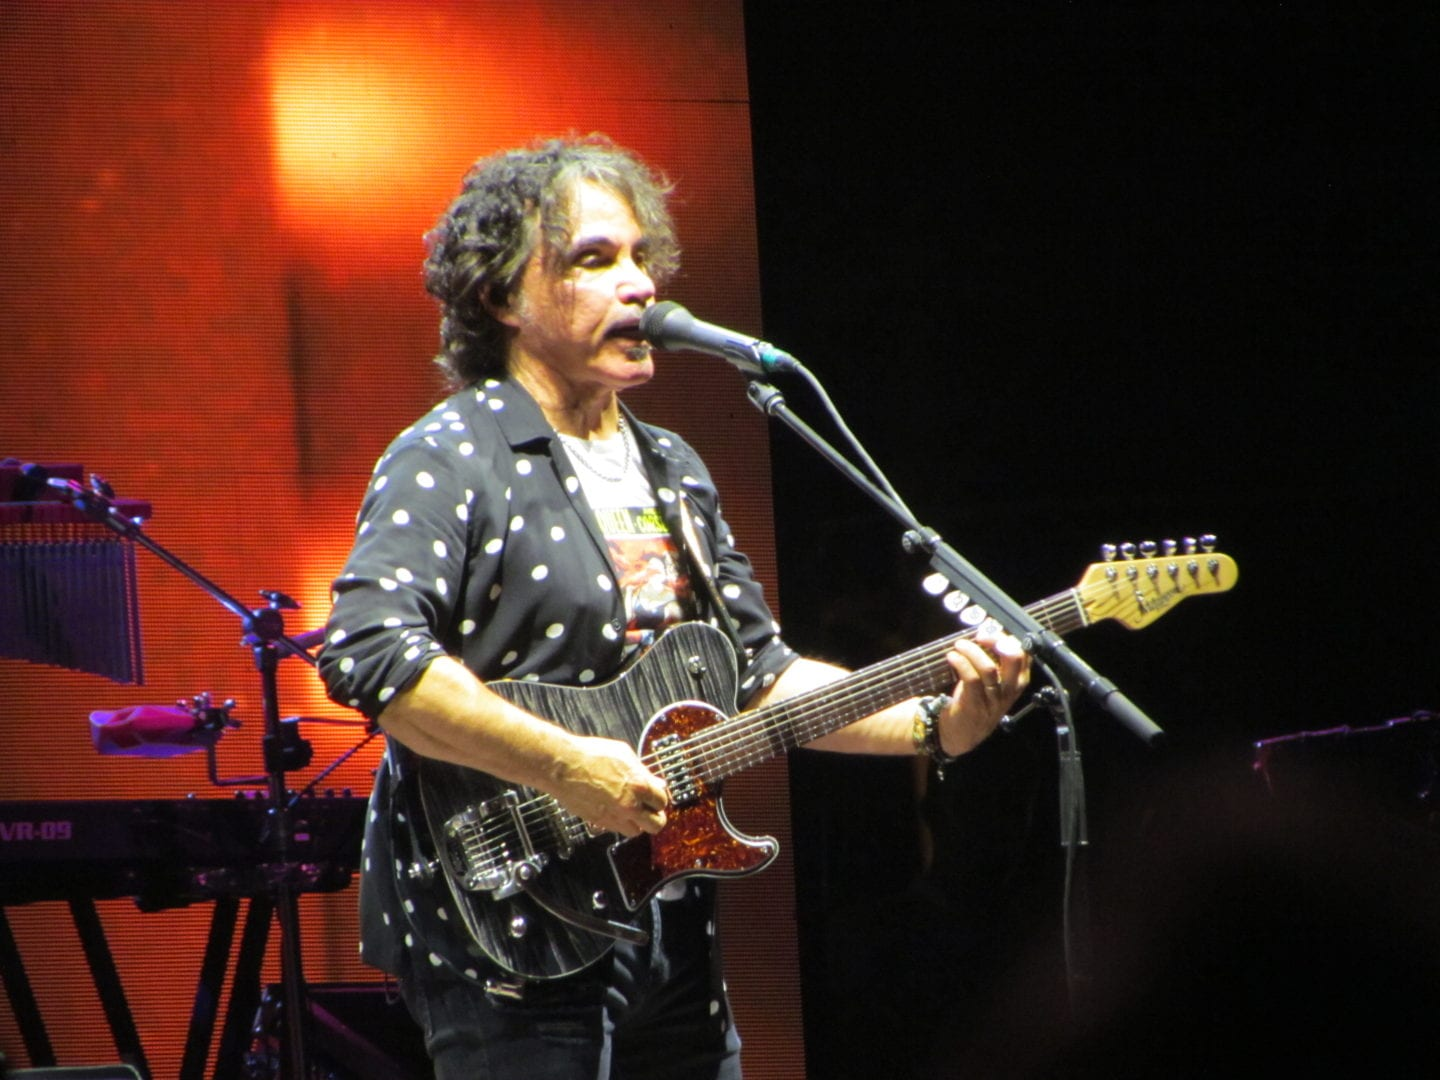 John Oates playing in front of a microphone